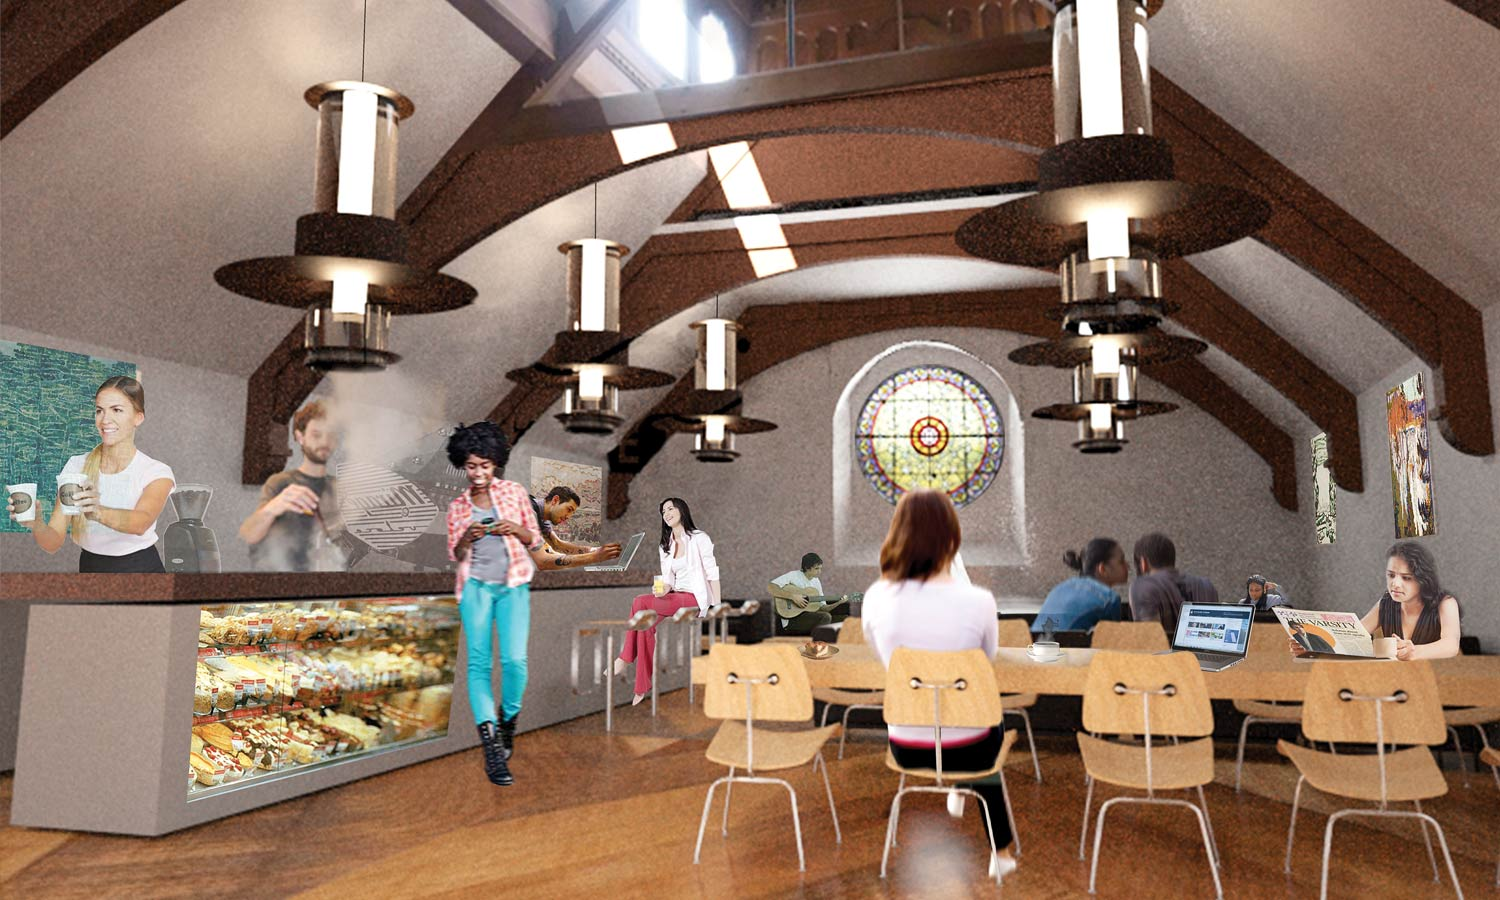 Library Café will meet the food and beverage needs of students using the revitalized UC Library